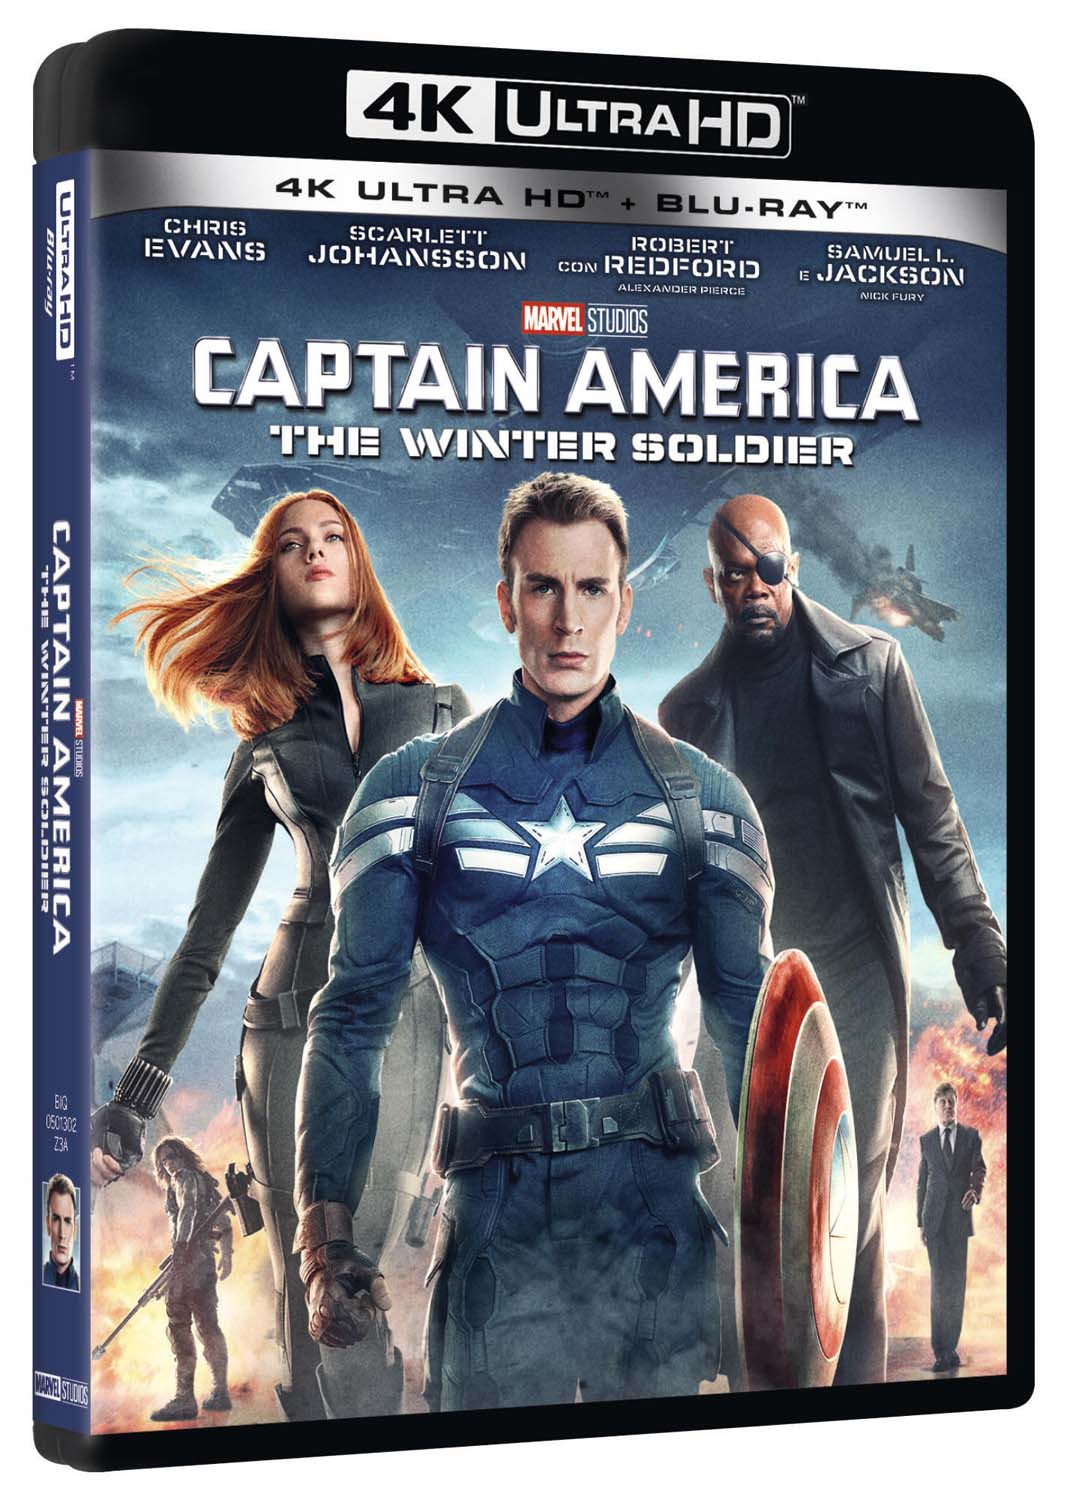 CAPTAIN AMERICA - THE WINTER SOLDIER (UHD)